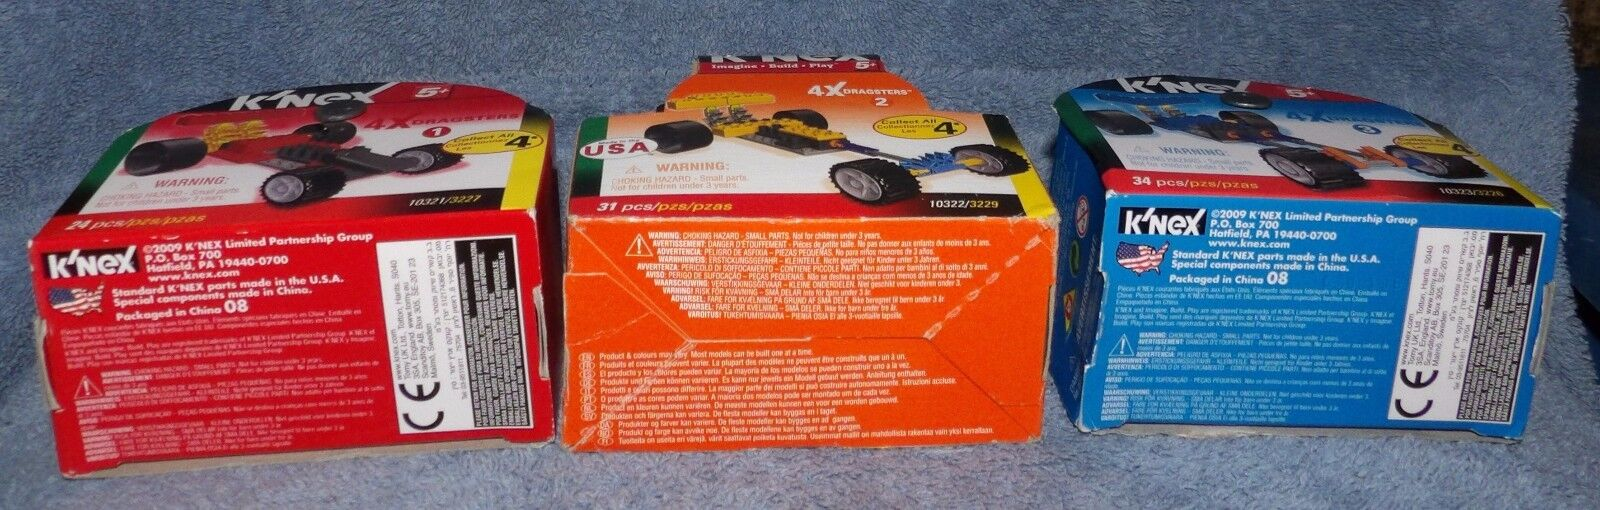 K'NEX 4X DRAGSTERS SET 2,  & 10323    RED, YELLOW  & blueE DRAGSTERS 59b441